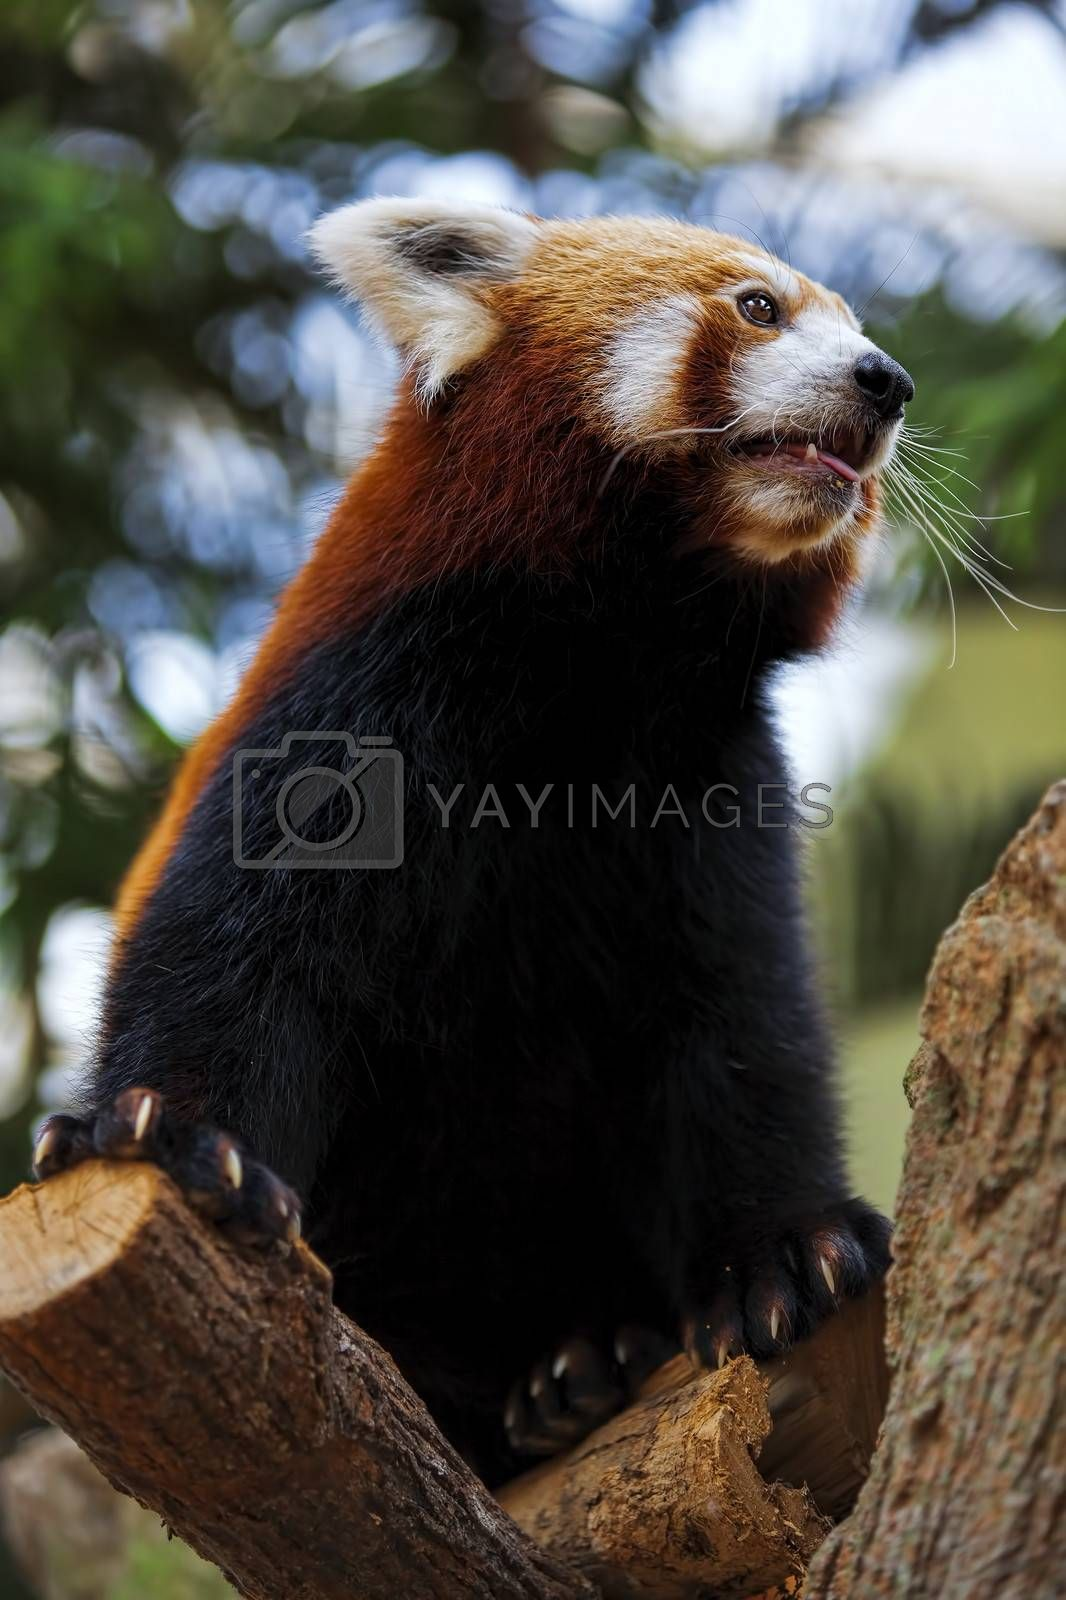 Portrait of a Red Panda sitting on a branch